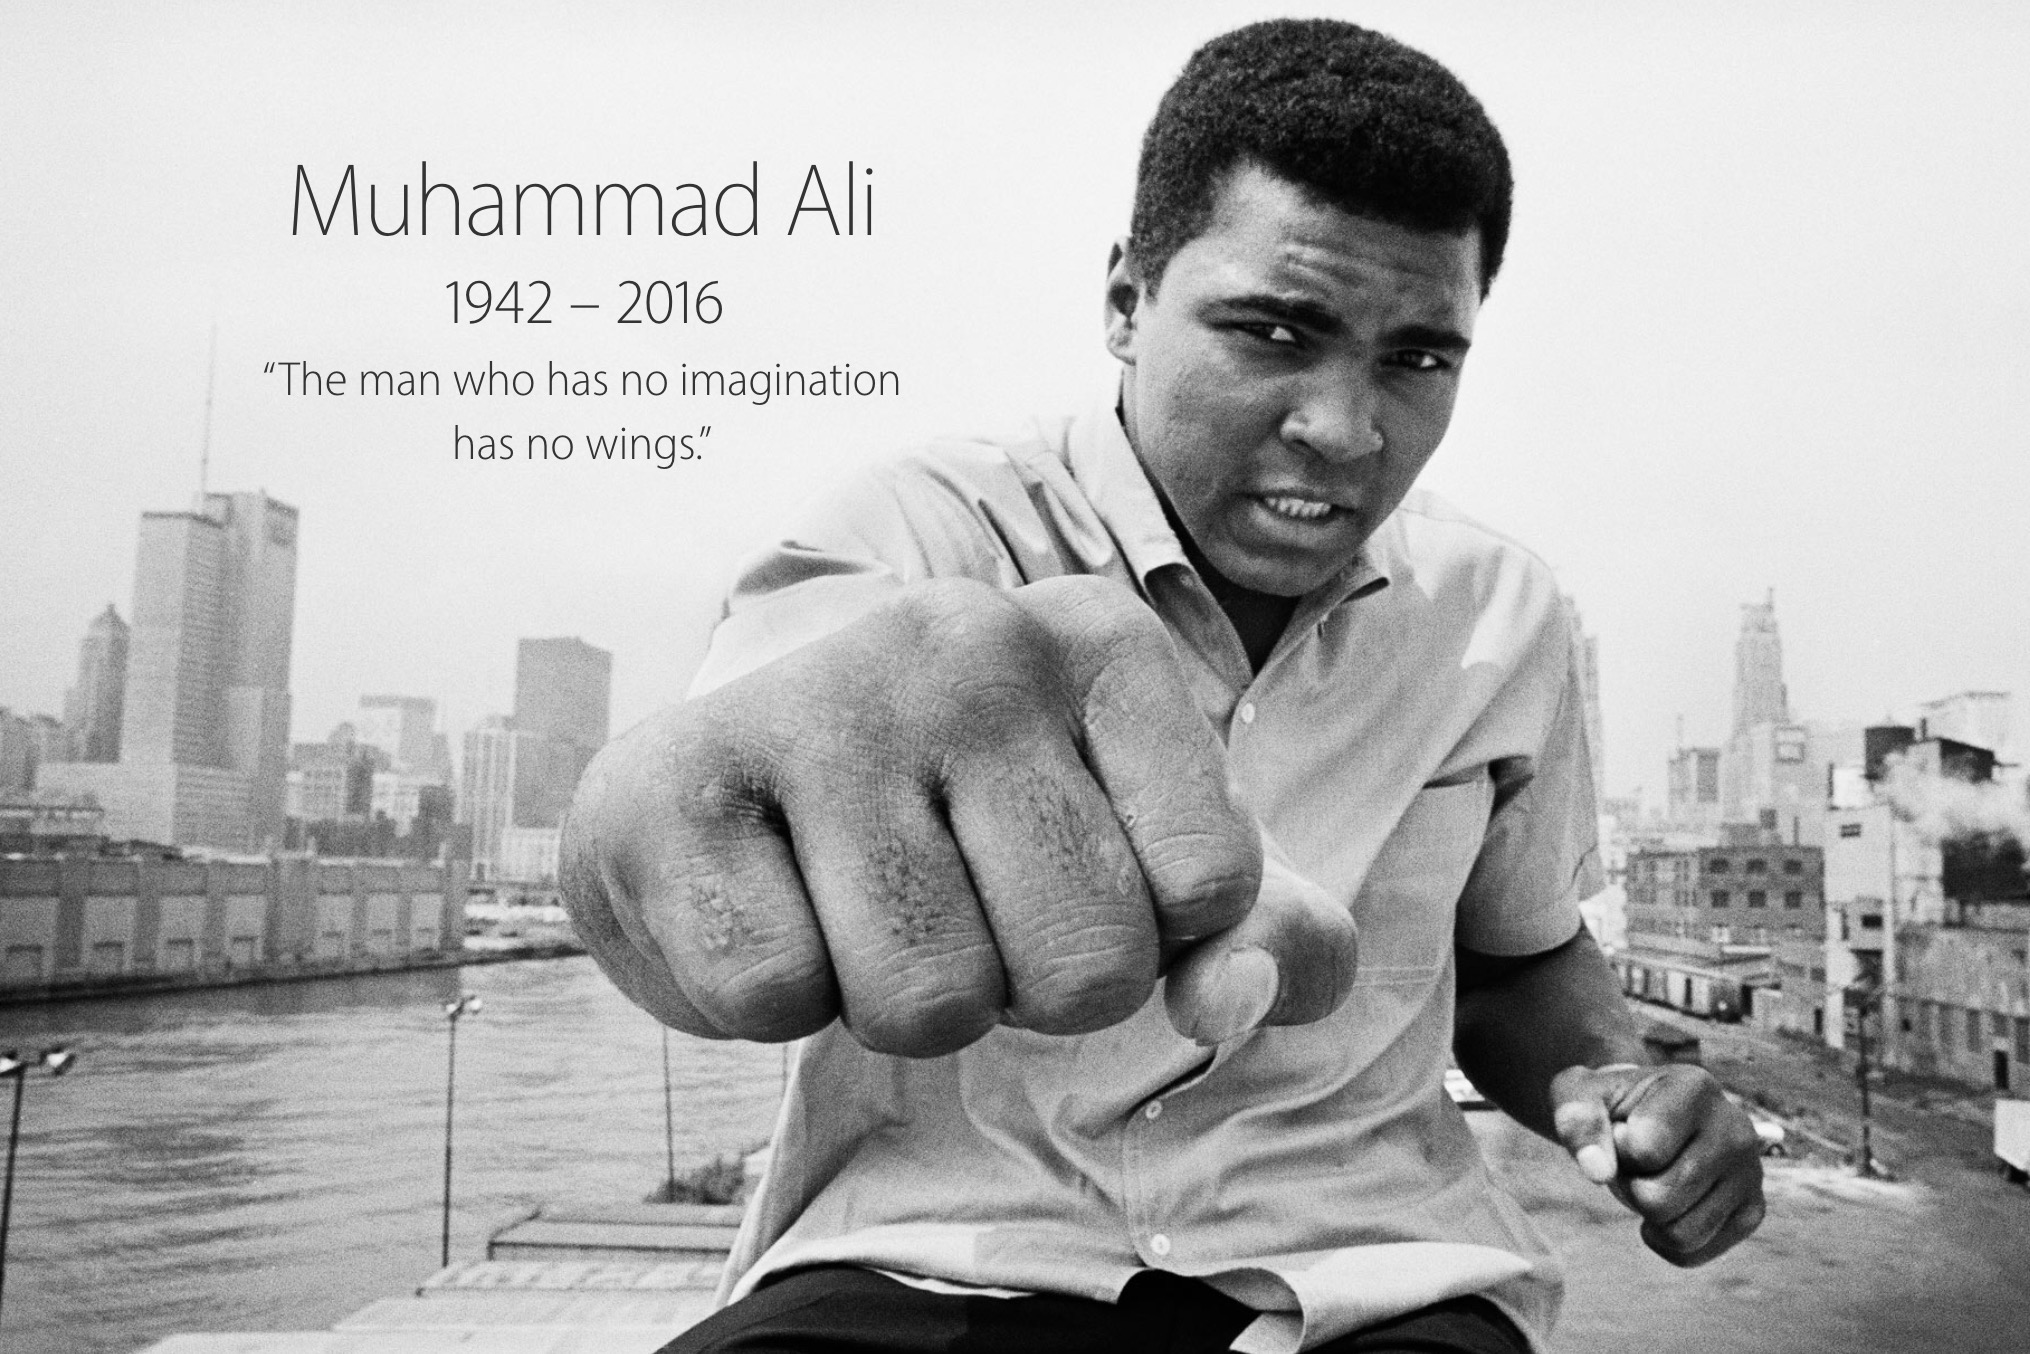 Apple Gives Homepage Tribute to Commemorate Muhammad Ali's Life